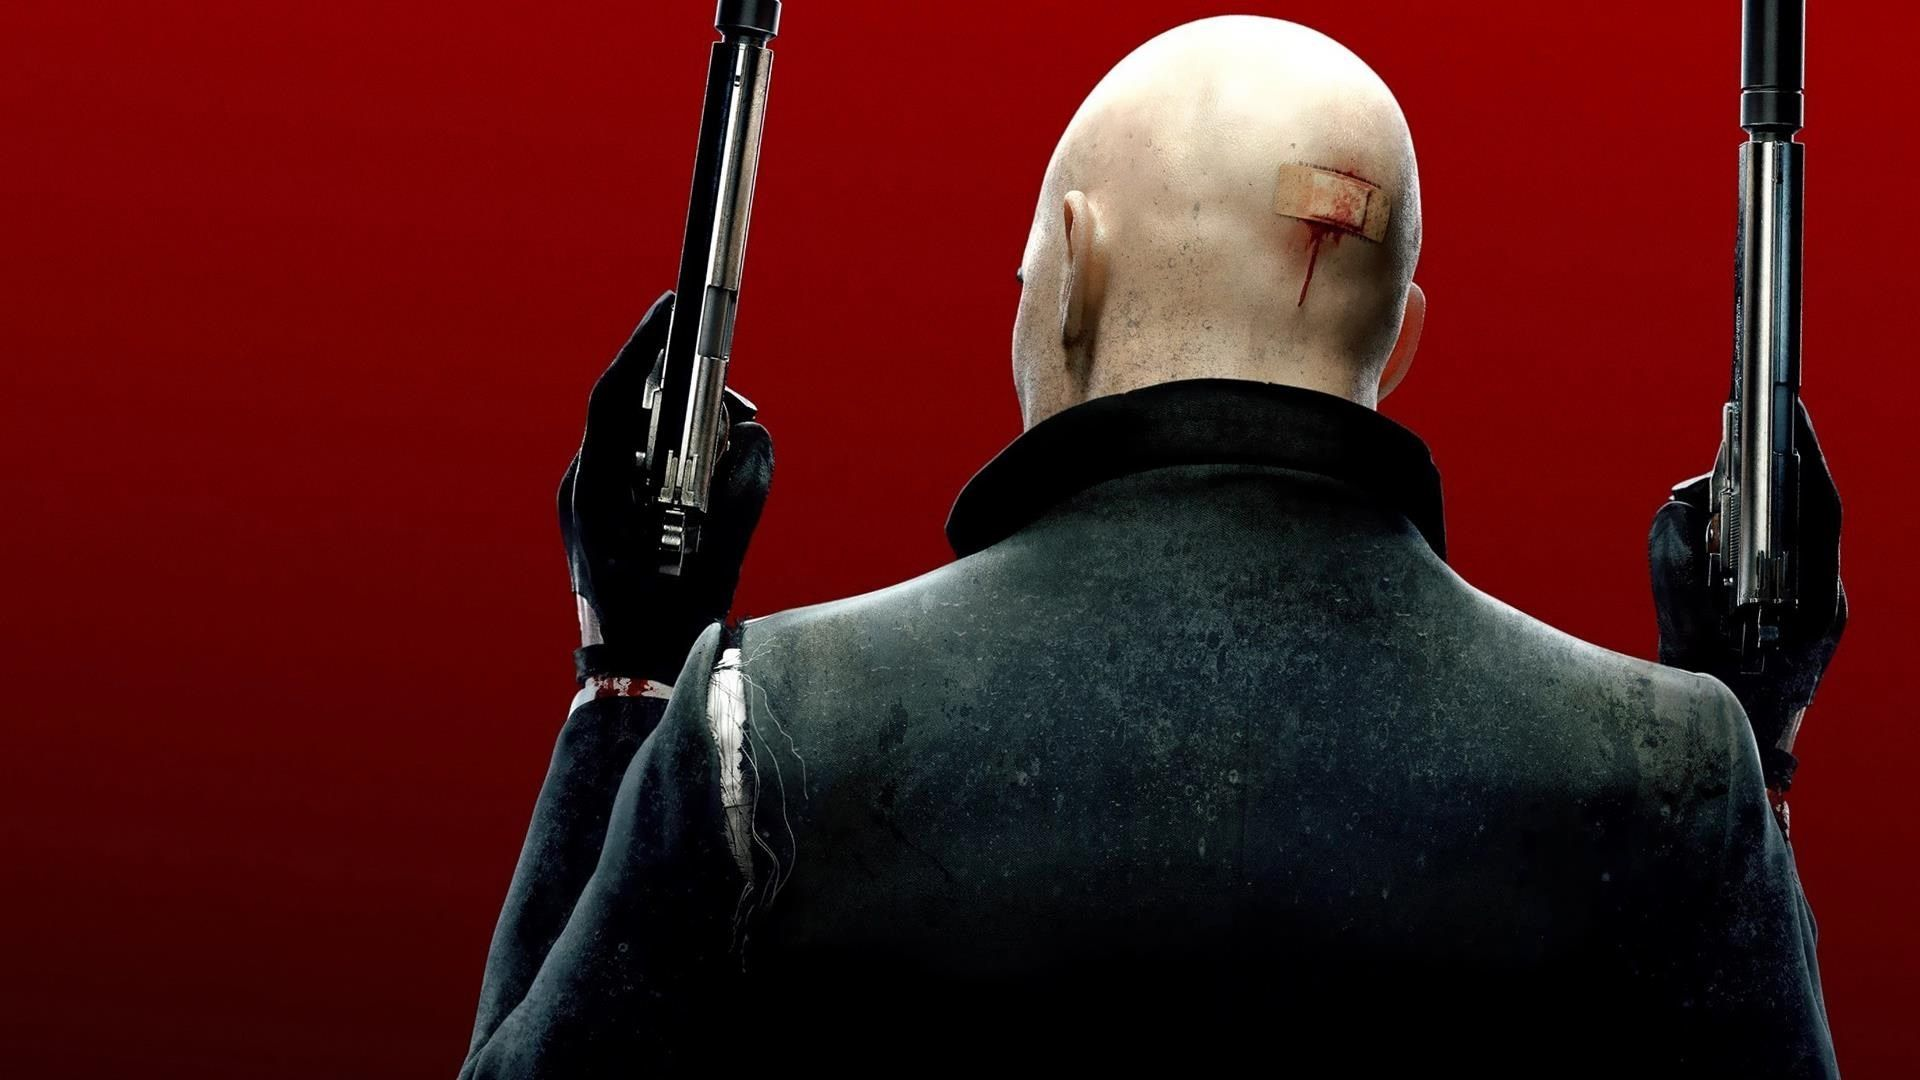 Hitman Absolution Full Hd Wallpaper Photo 1920x1080